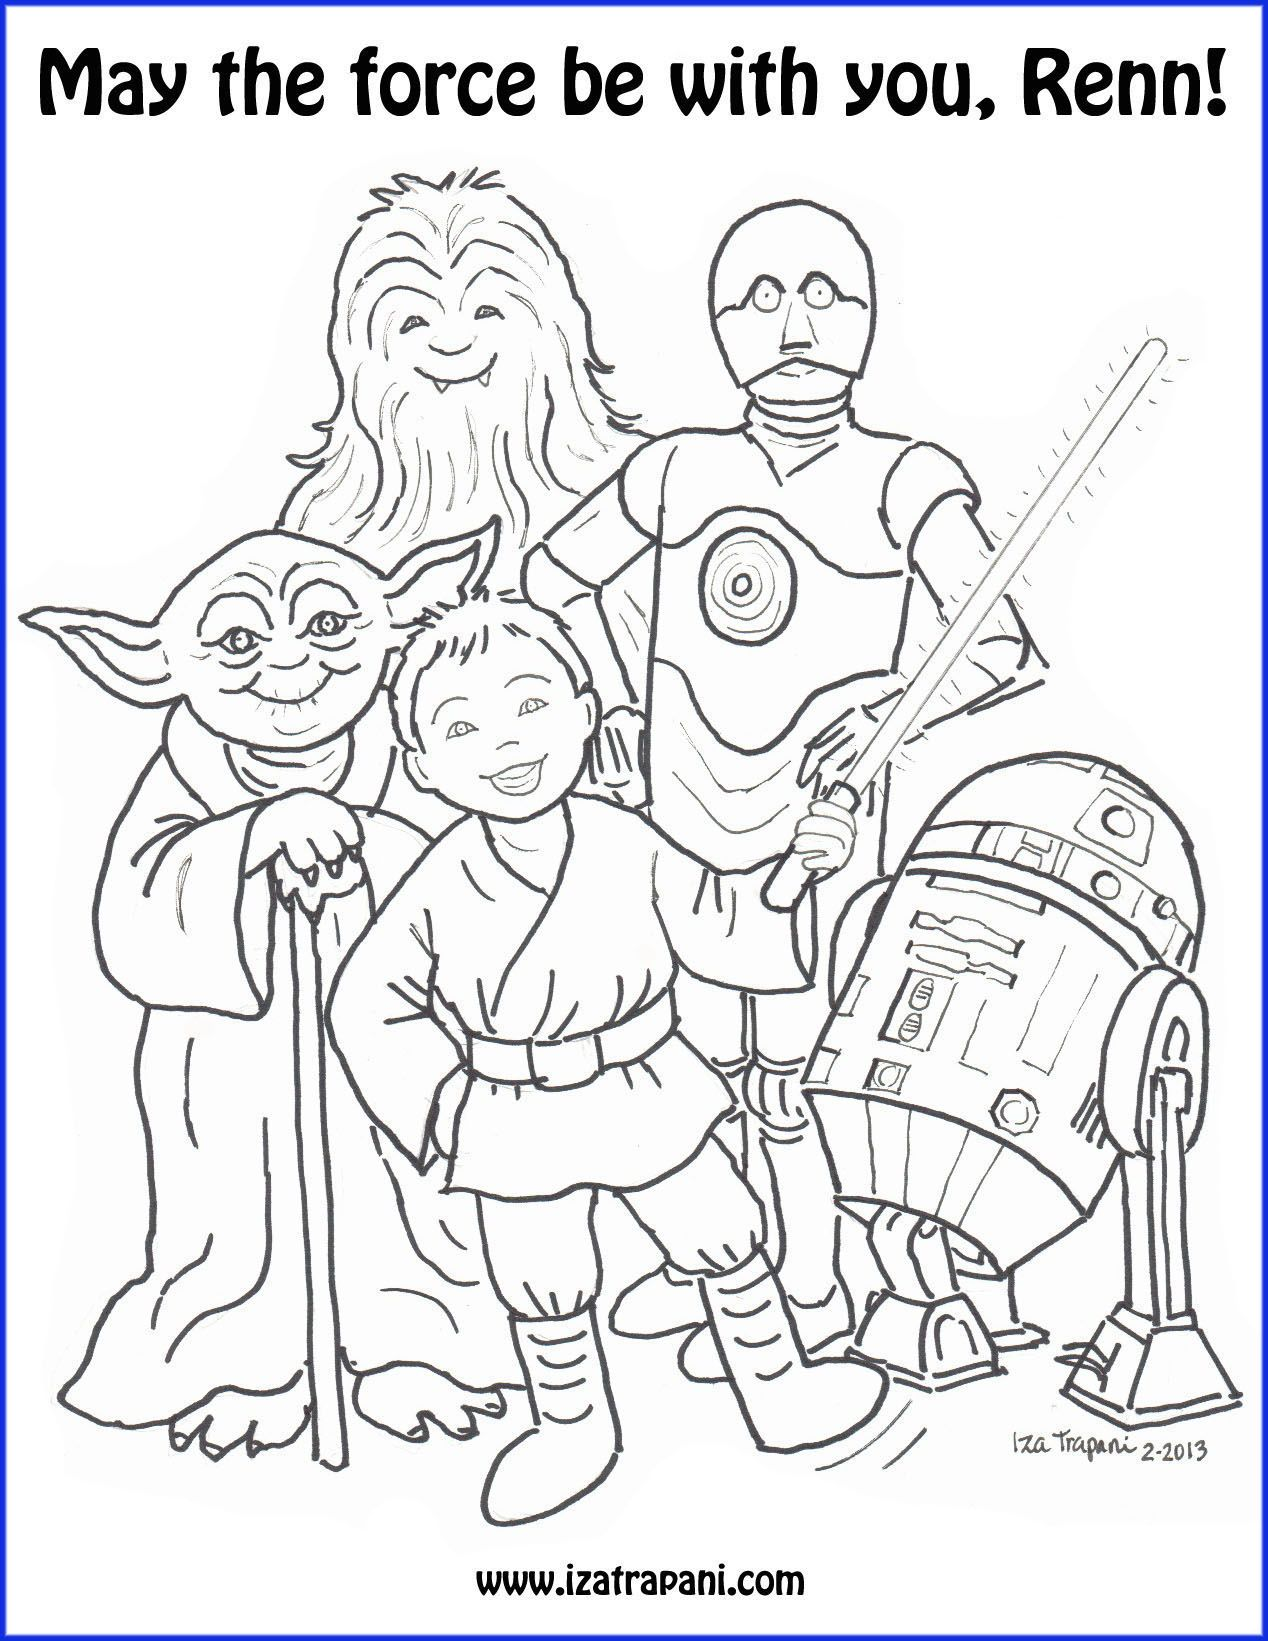 Printable coloring pages may - Download